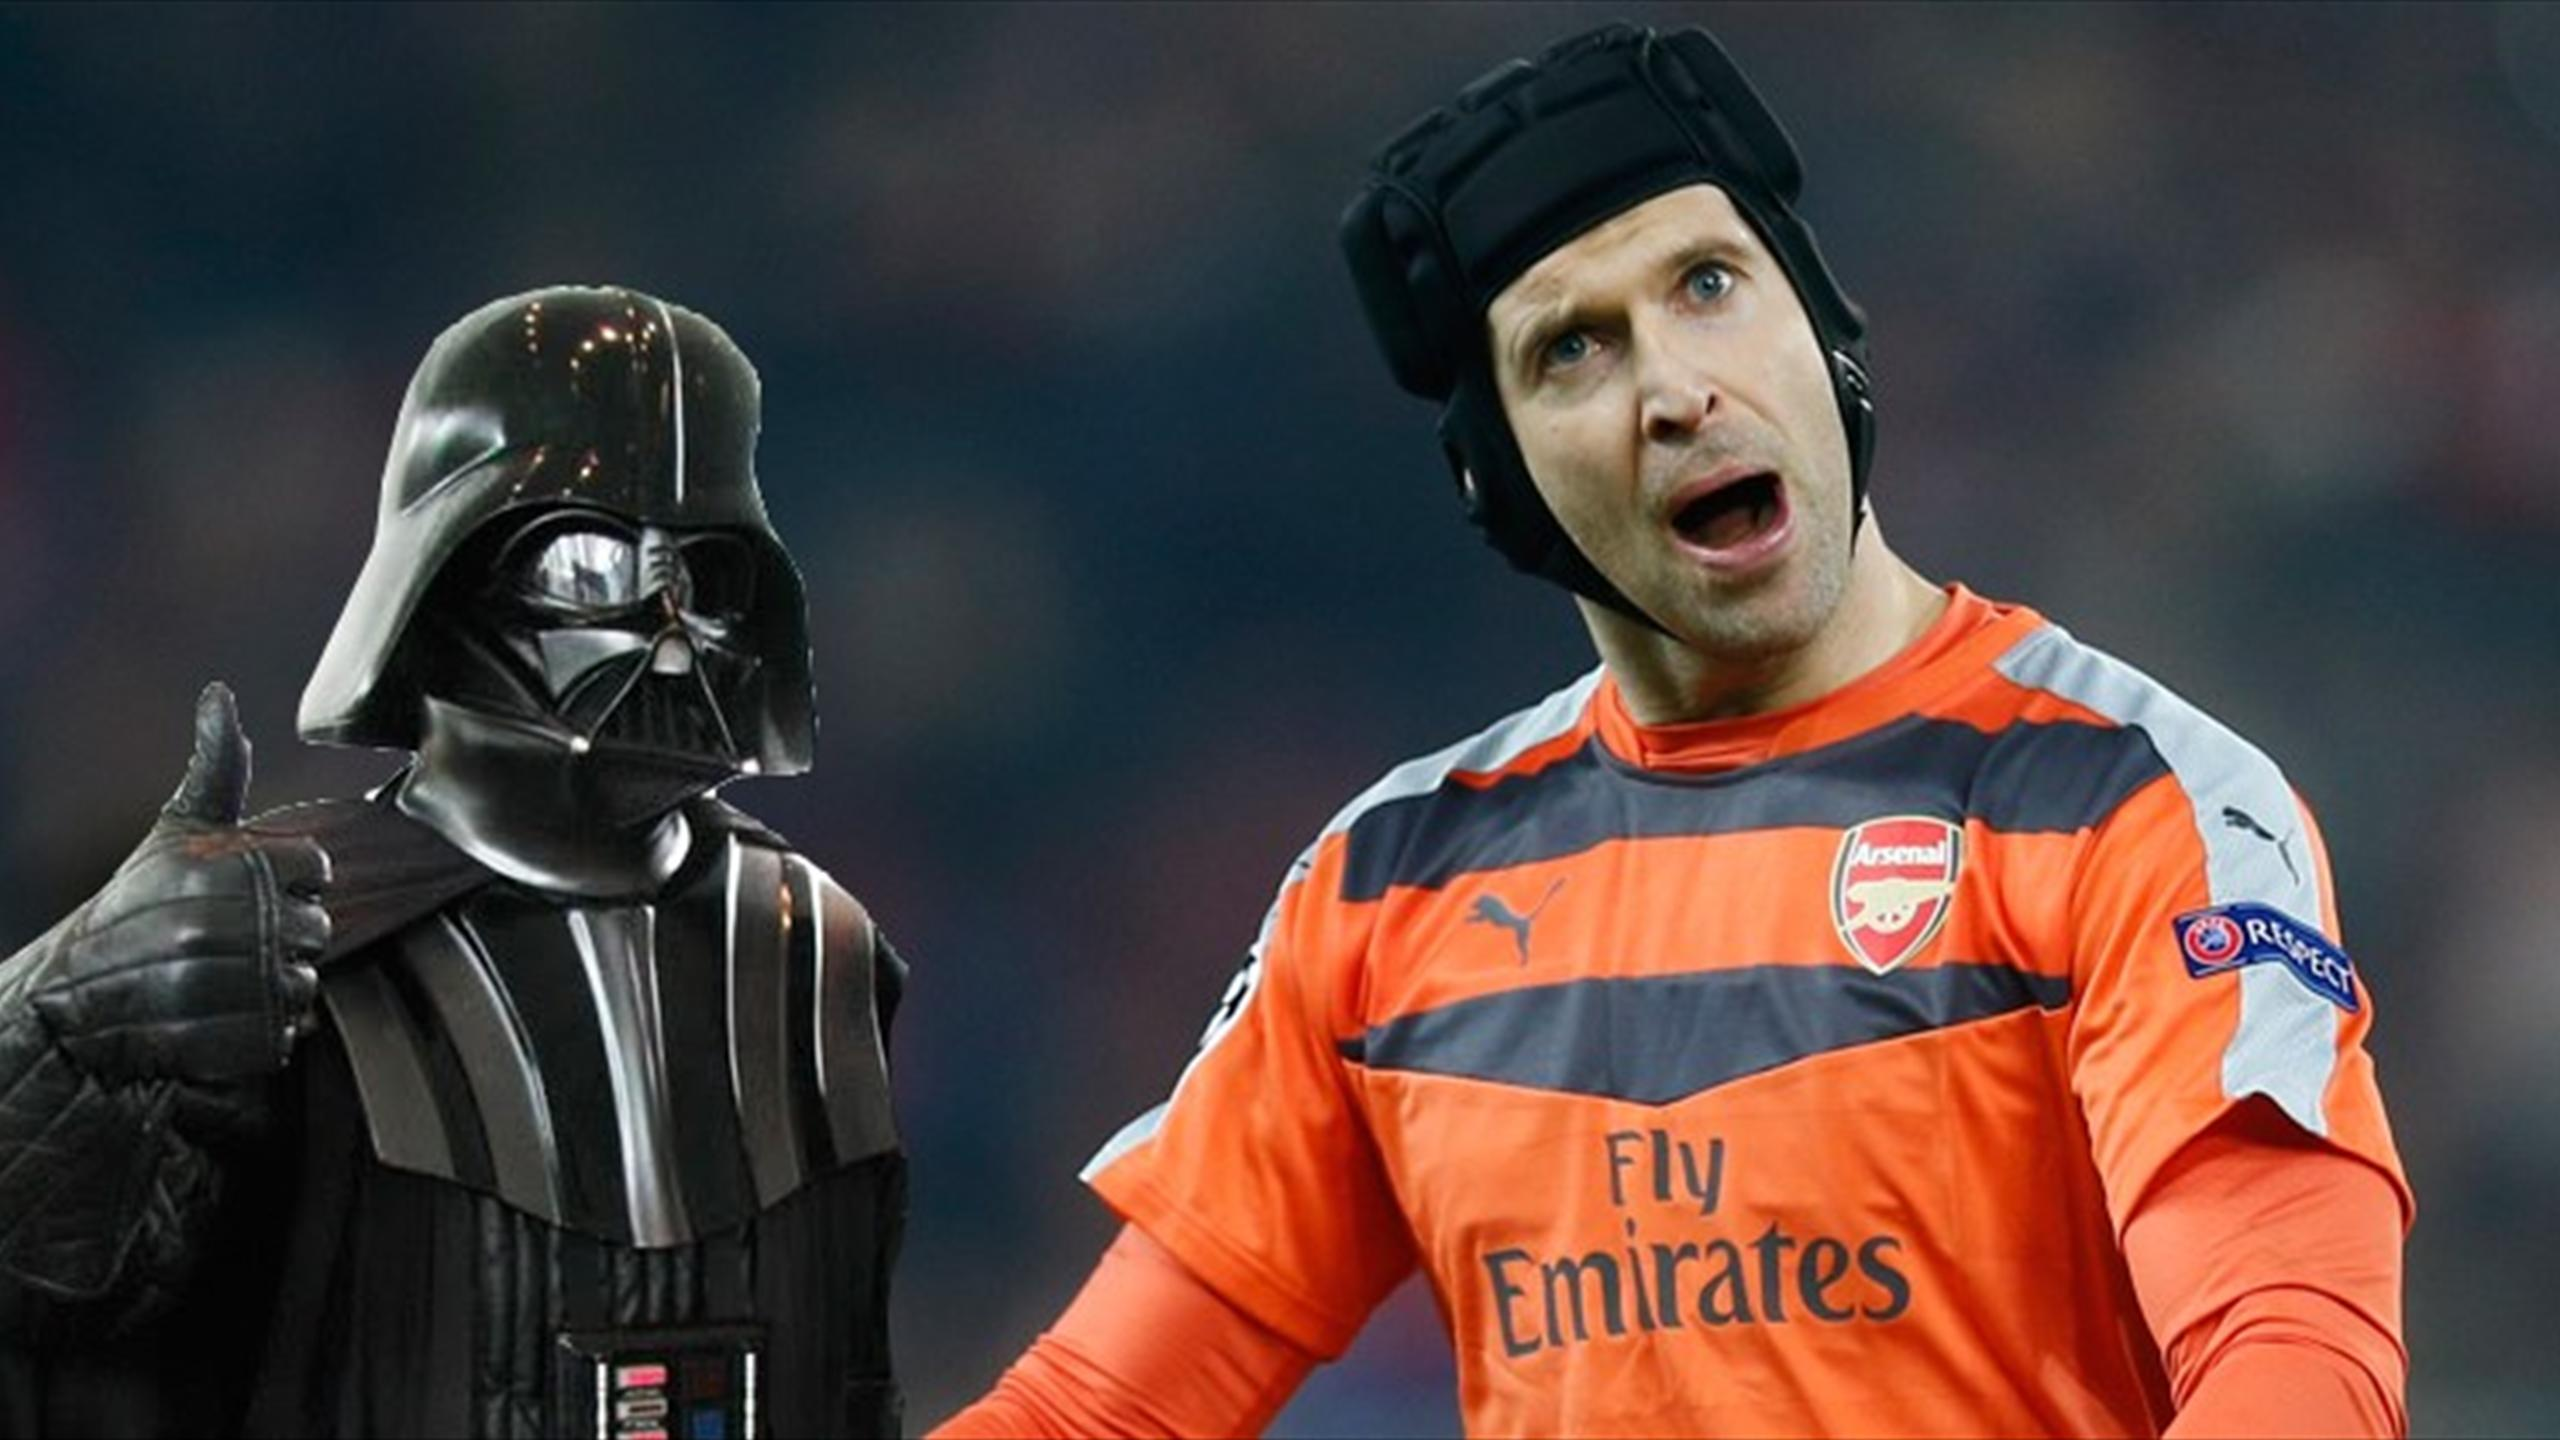 Arsenal goalkeeper Petr Cech 'with' Darth Vader